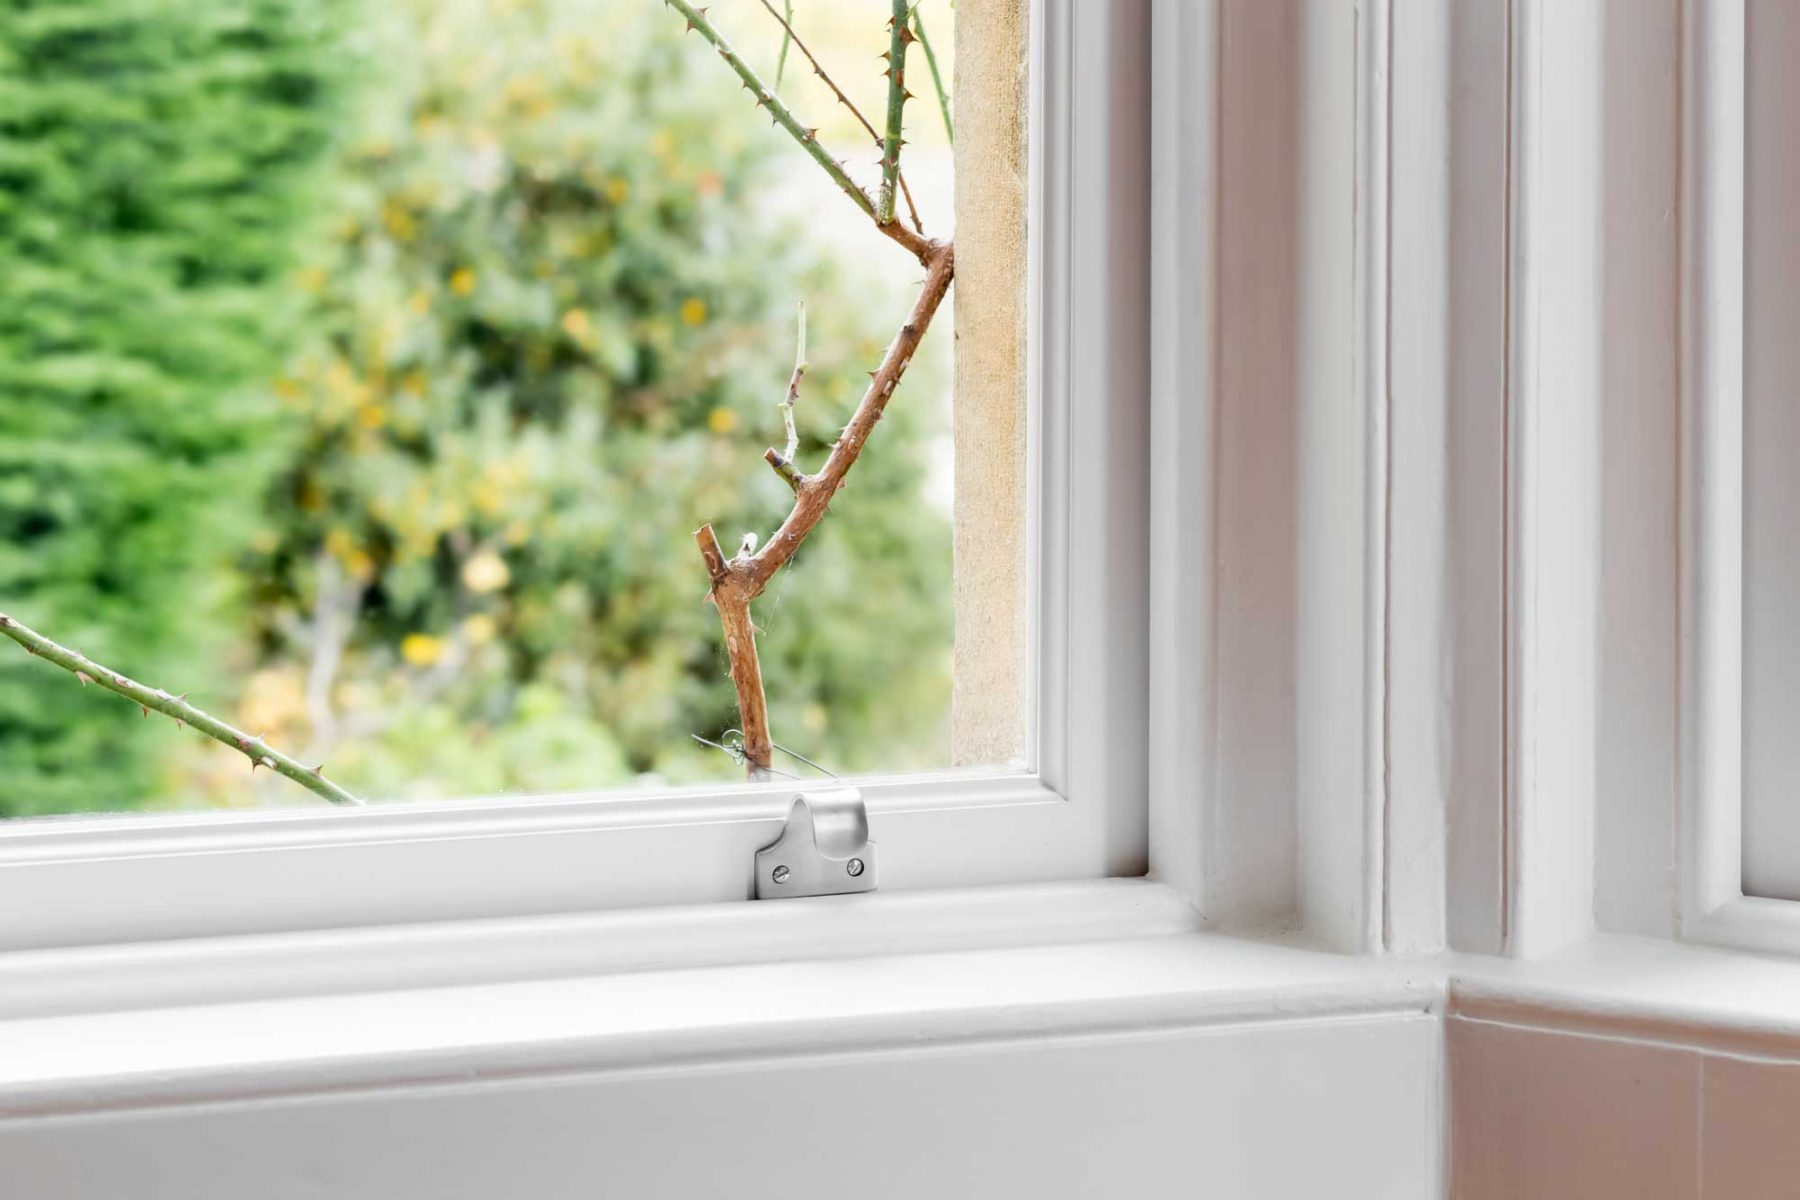 Sash window restoration work